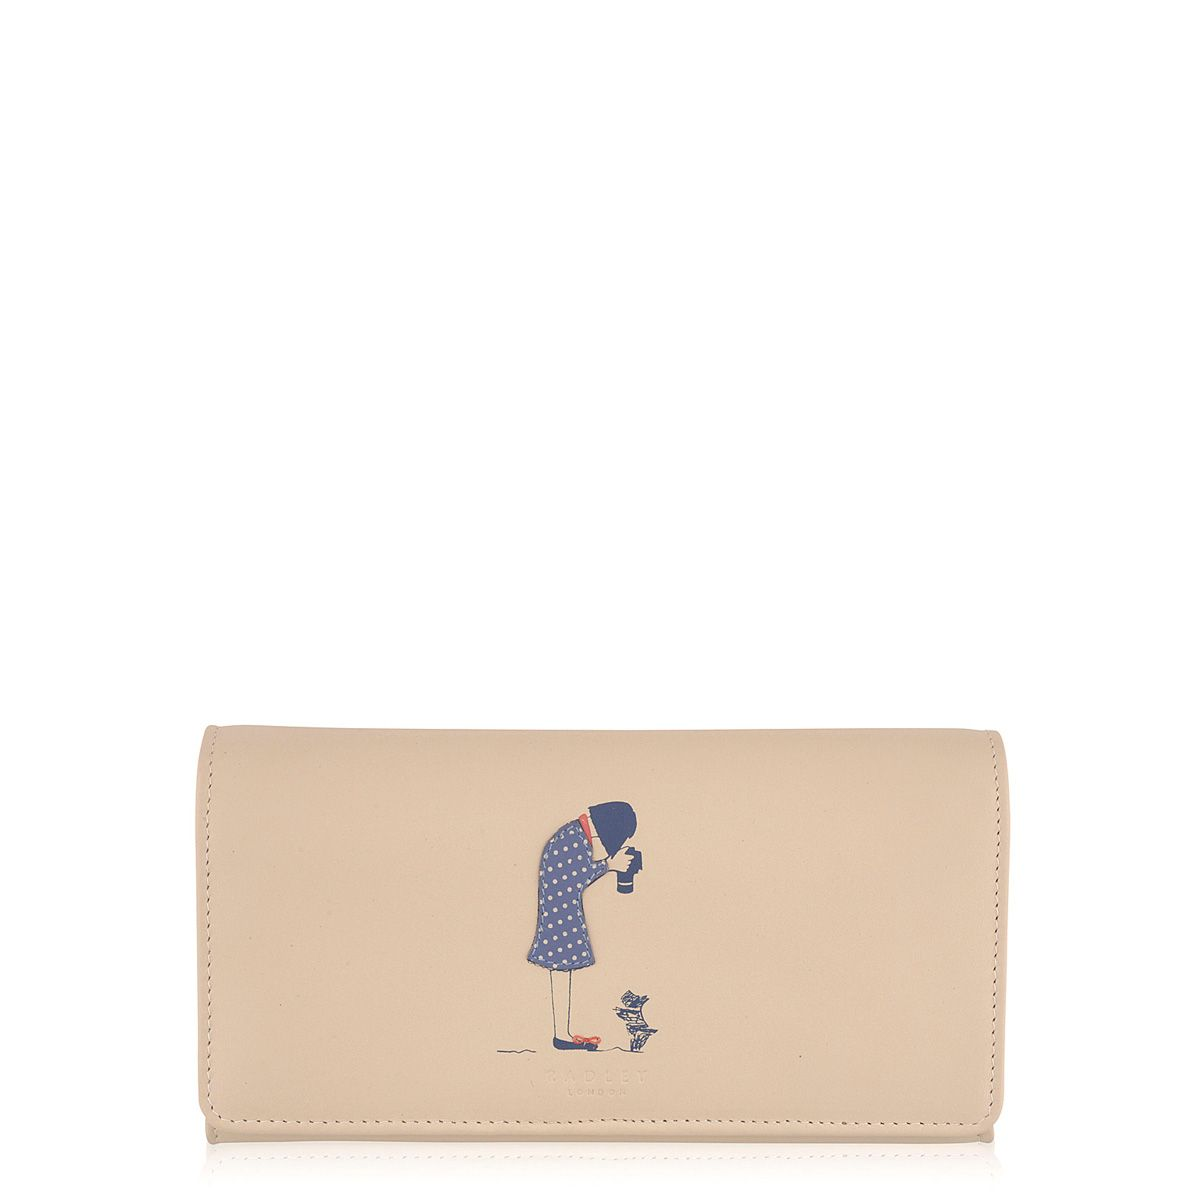 Snap happy neutral large flapover purse